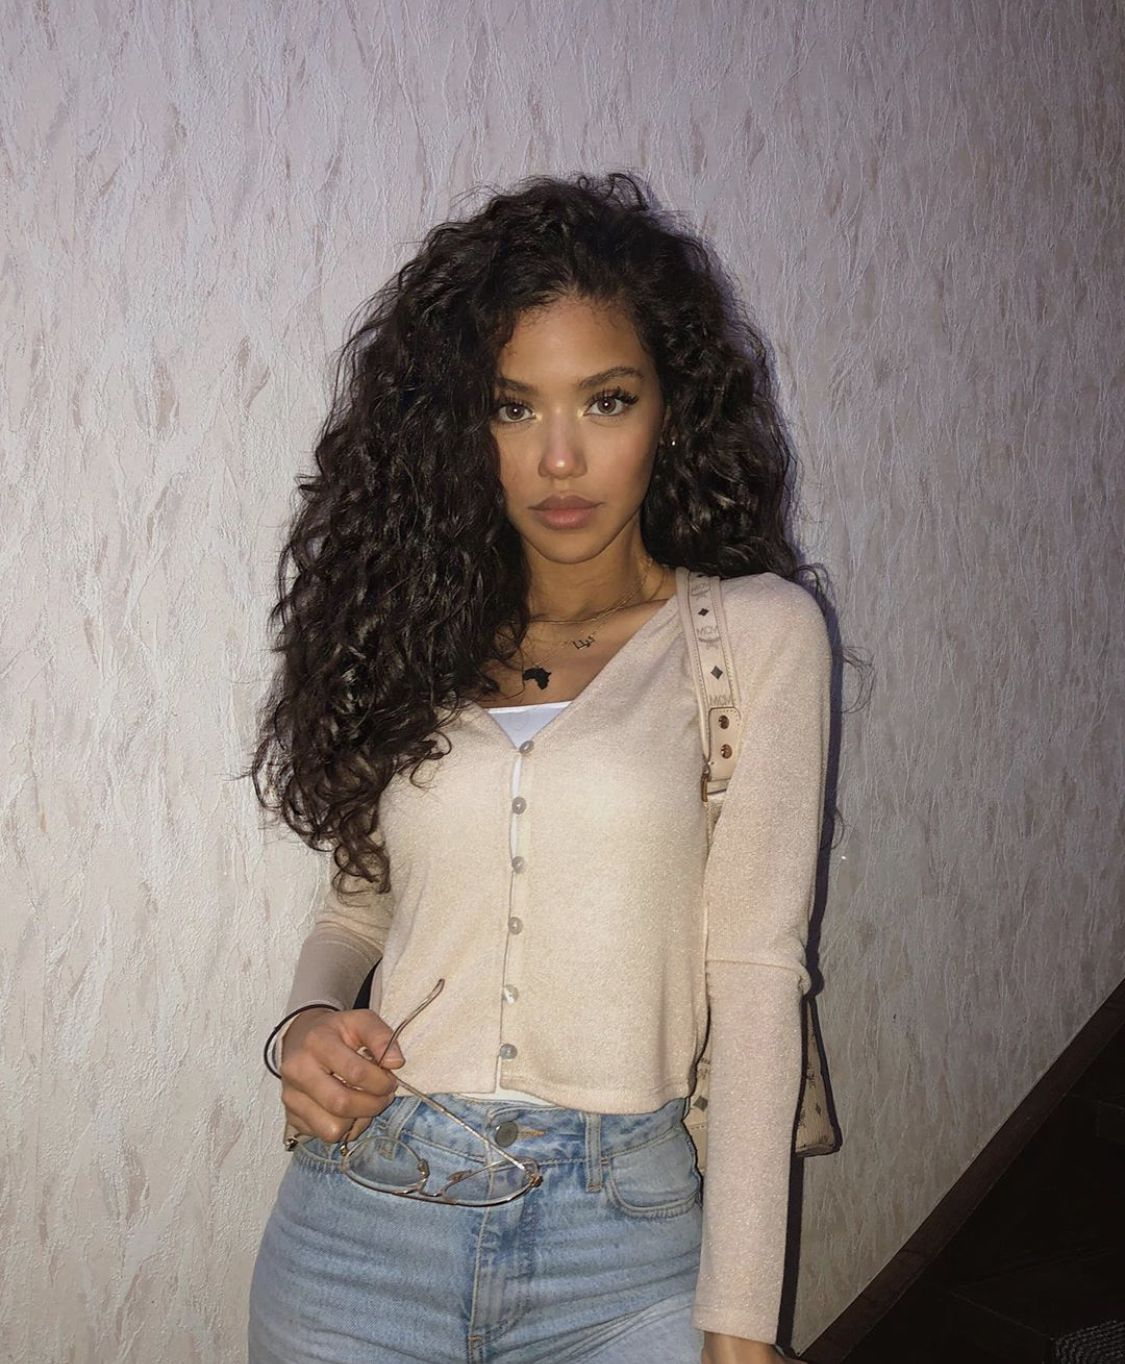 Black Wigs For Black Women Finger Wave Hairstyle Remy Wigs For African American Short Style Black Human Hair Wigs Beach Wave Lace Front Wig